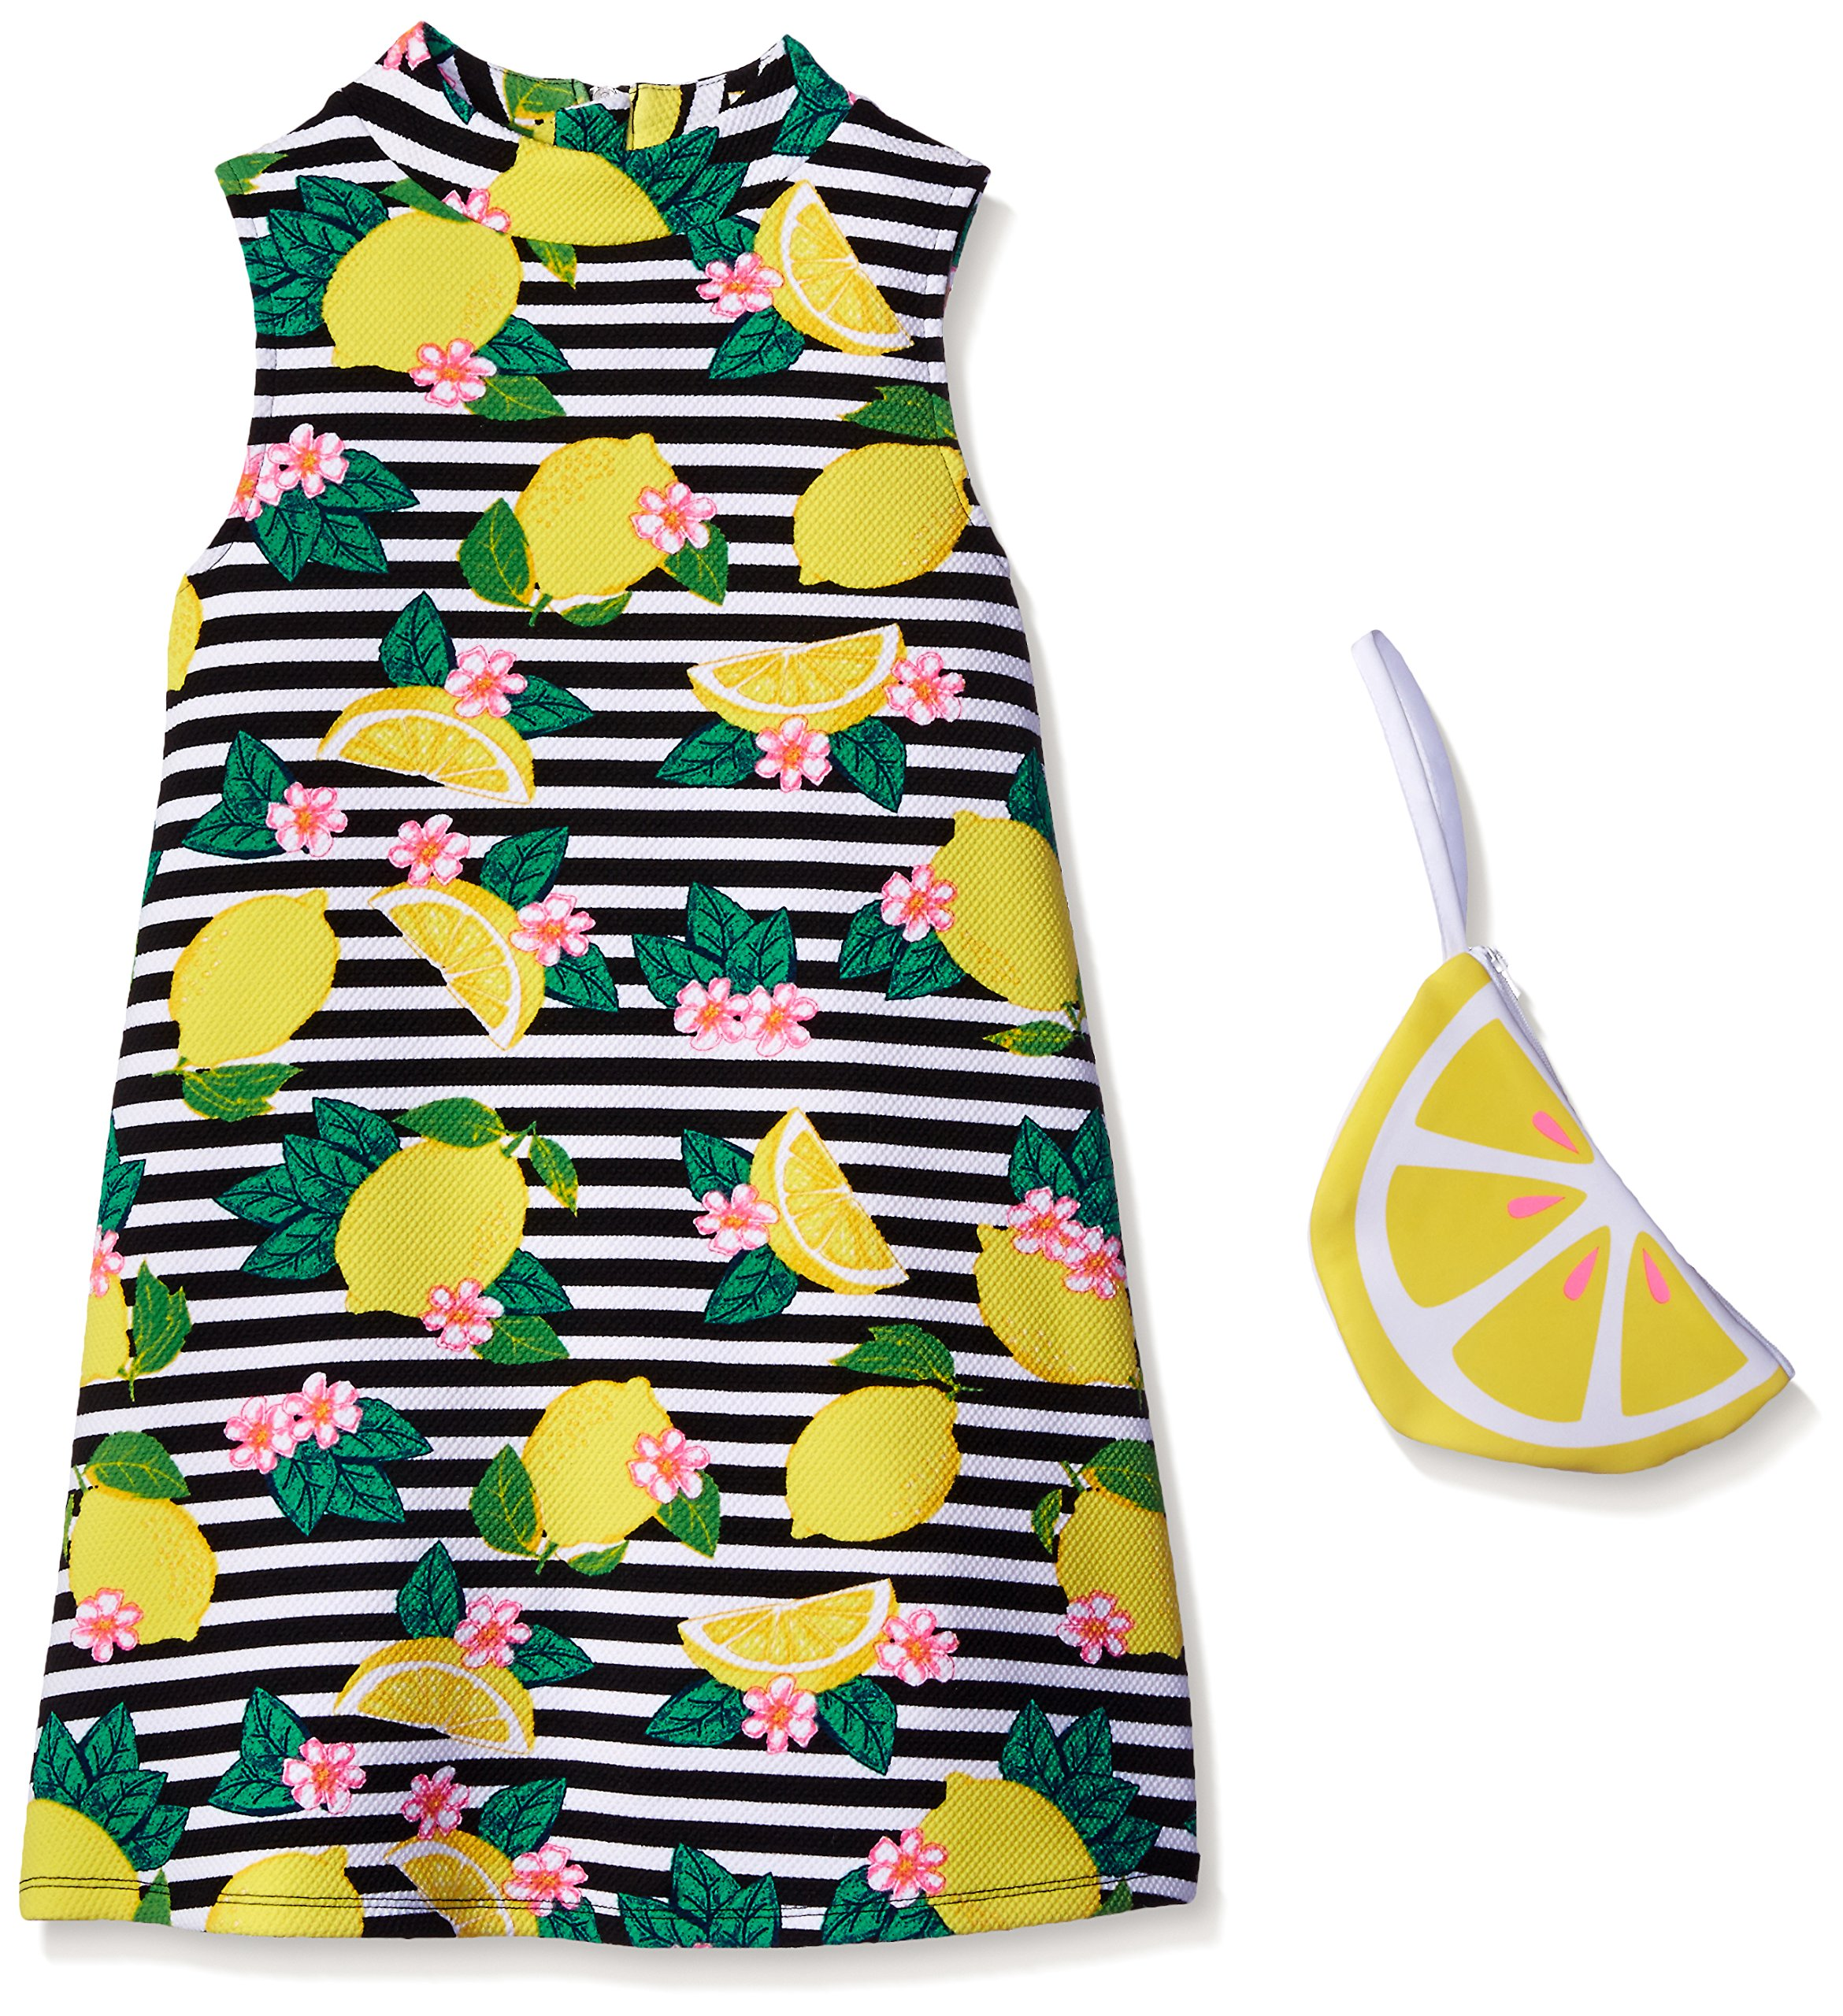 Pogo Club Little Girls Weekend In Newport Lemon Printed Textured Knit Dress With Bag Black LARGE/6X by Pogo Club